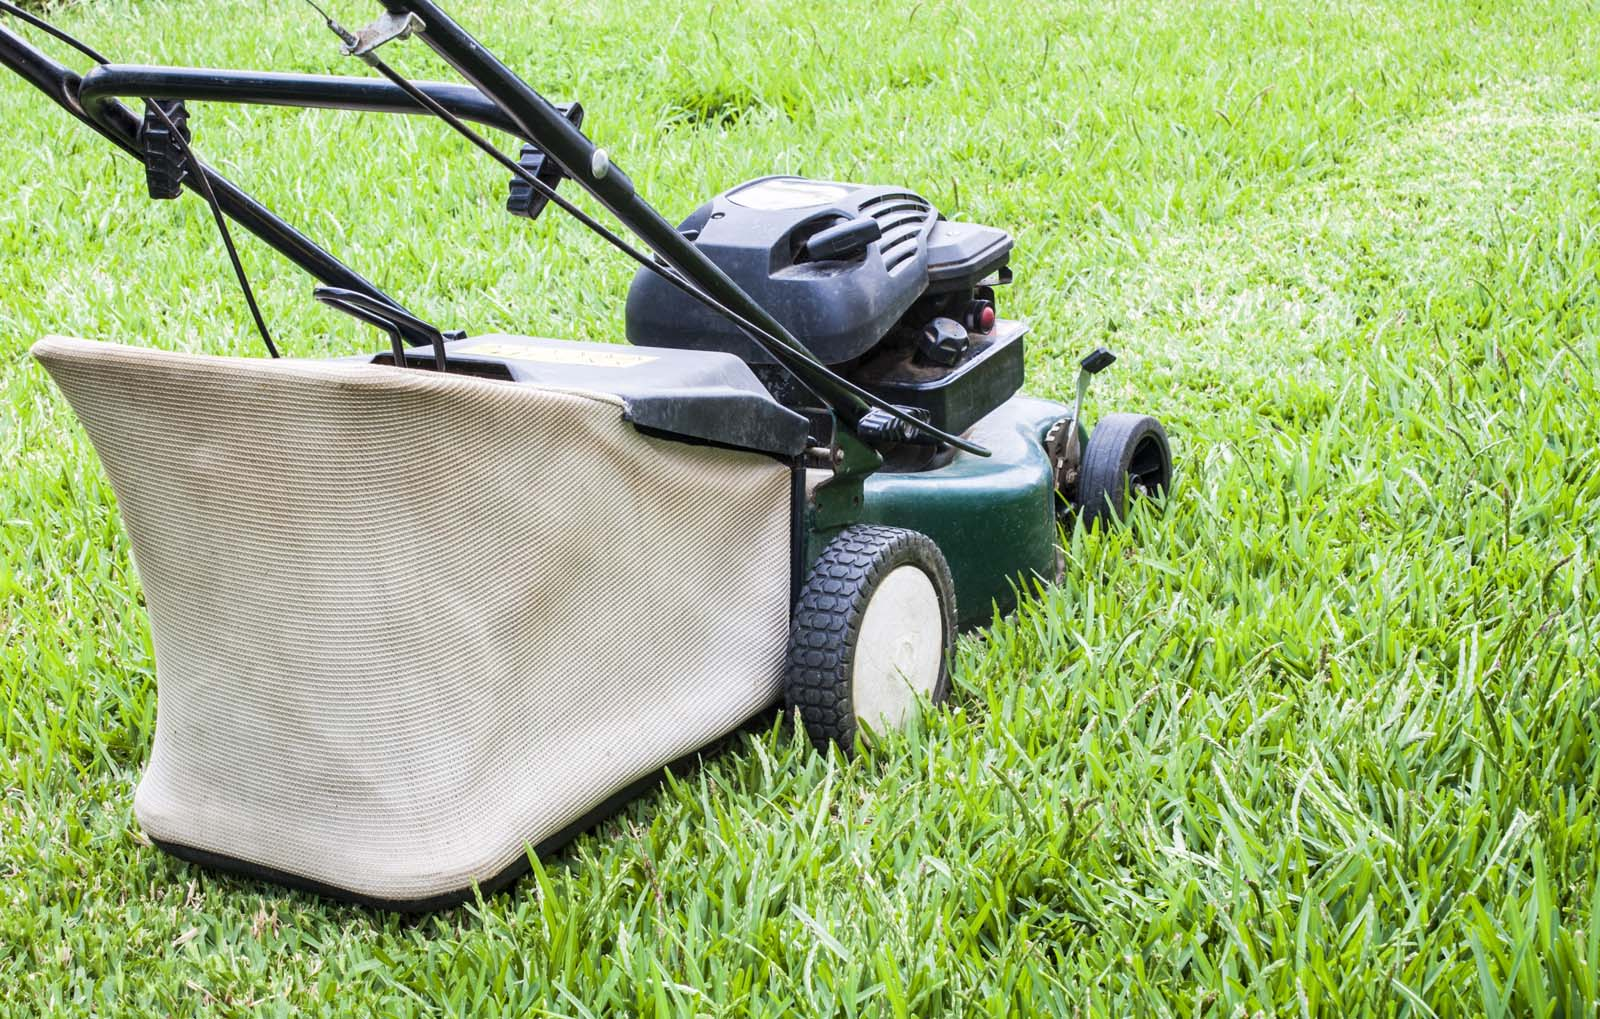 Find A Reliable Lawn Mower Anywhere In Australia